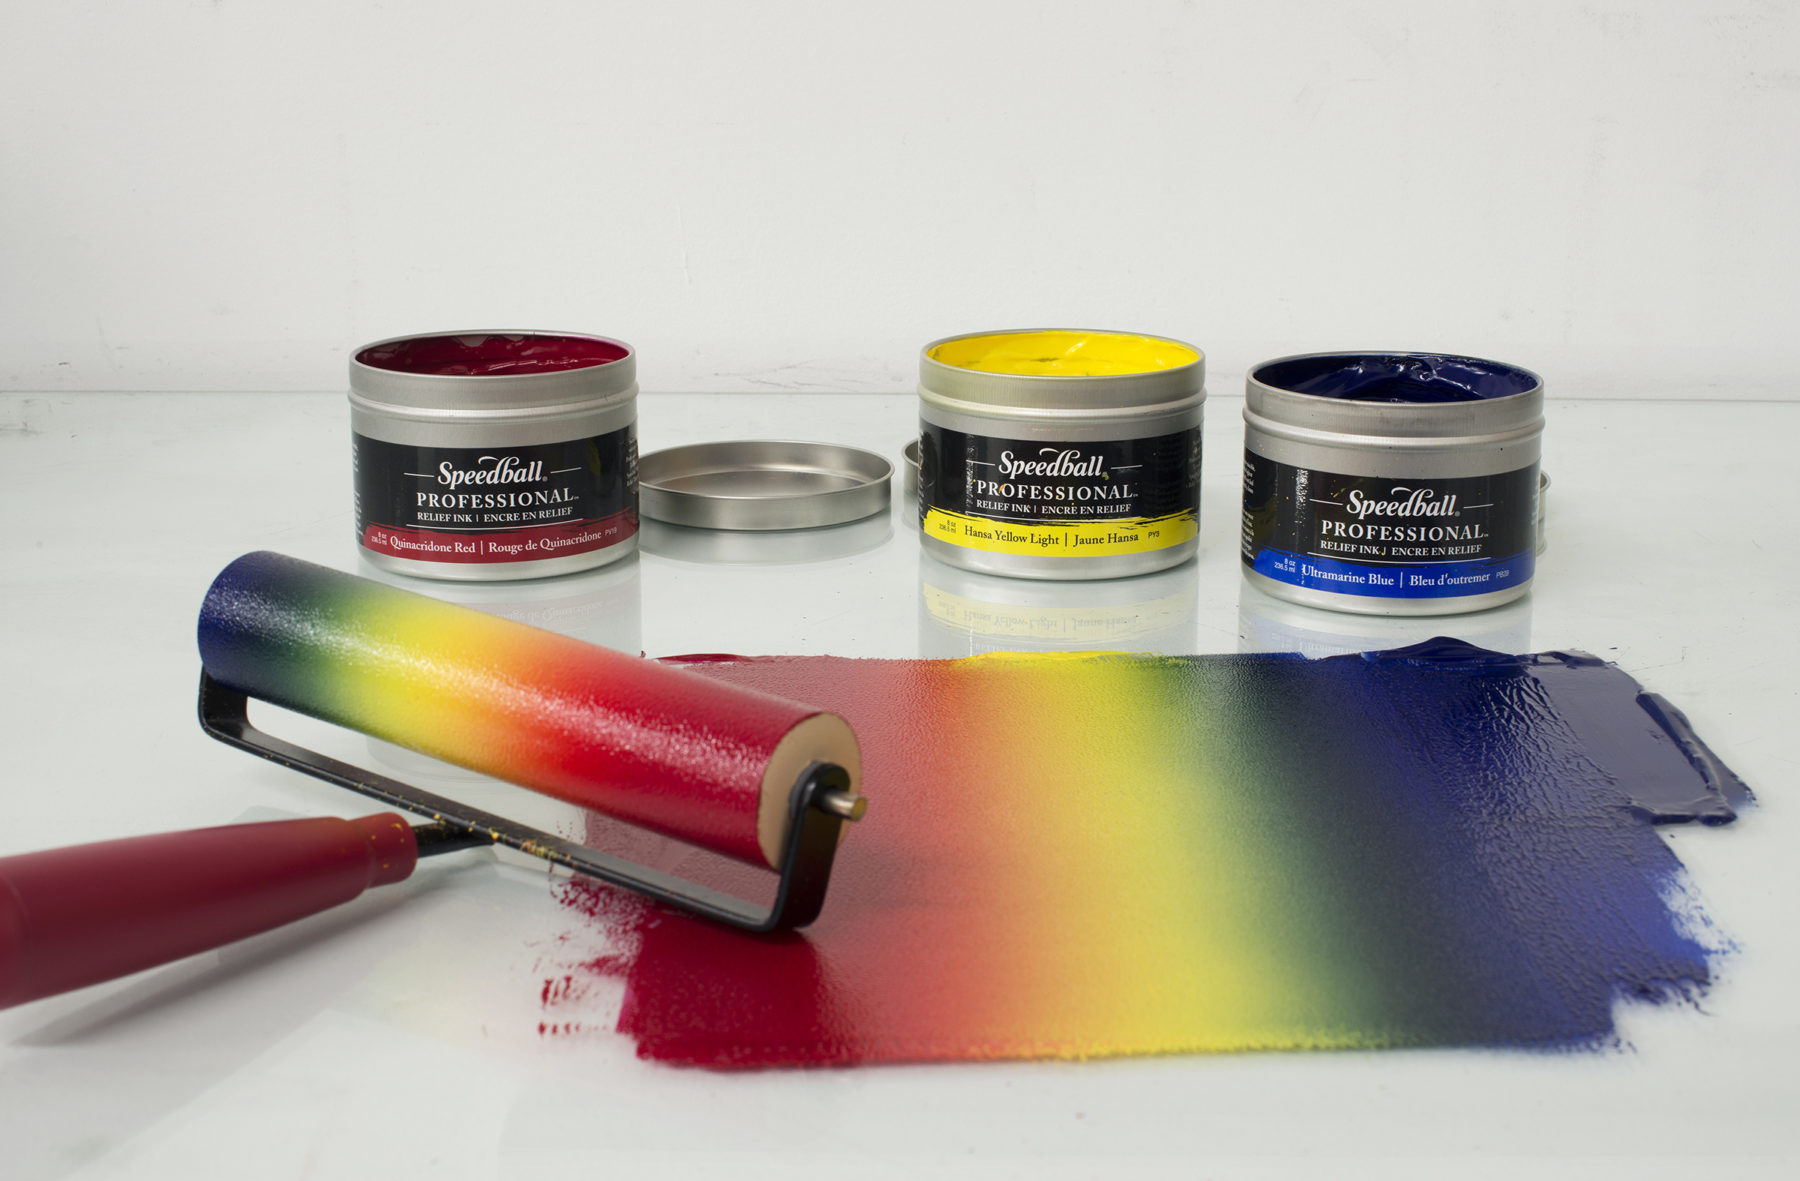 003949-003945-003942-Professional-Relief-Ink-Process-Colors-Group-Mixed-e1512571873317.jpg